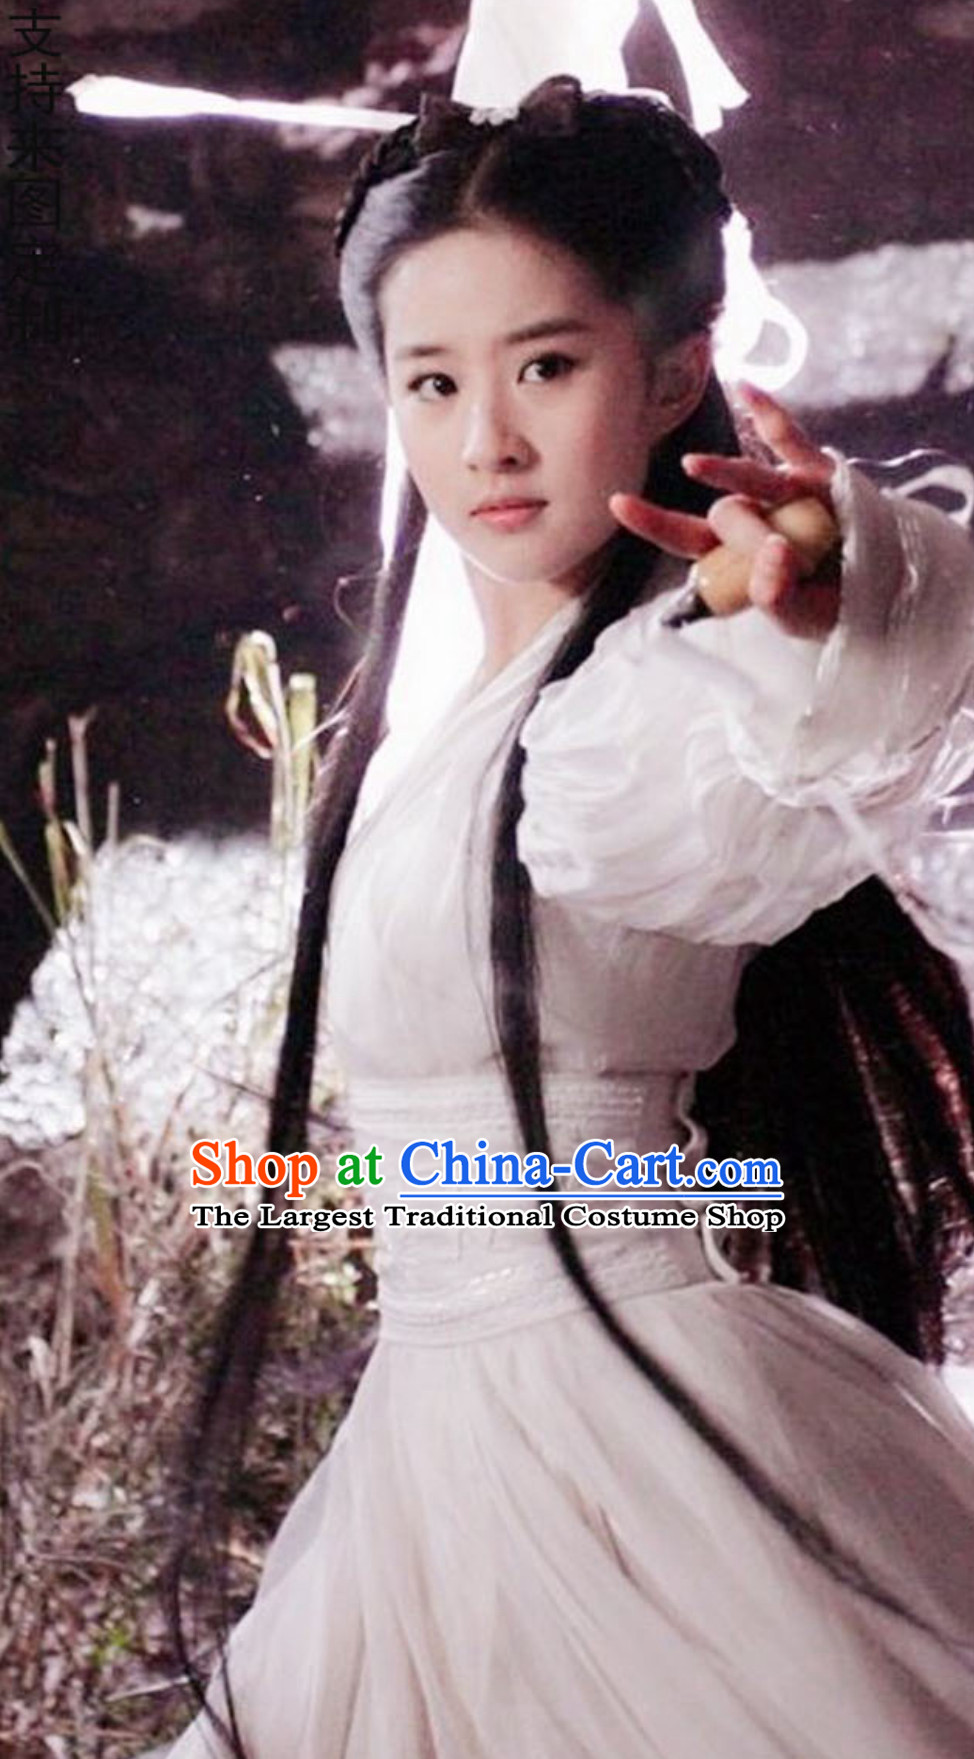 Shen Diao Xia Lv Liu Yifei Xiao Long Nv Dragon Lady Drama Costume Complete Set